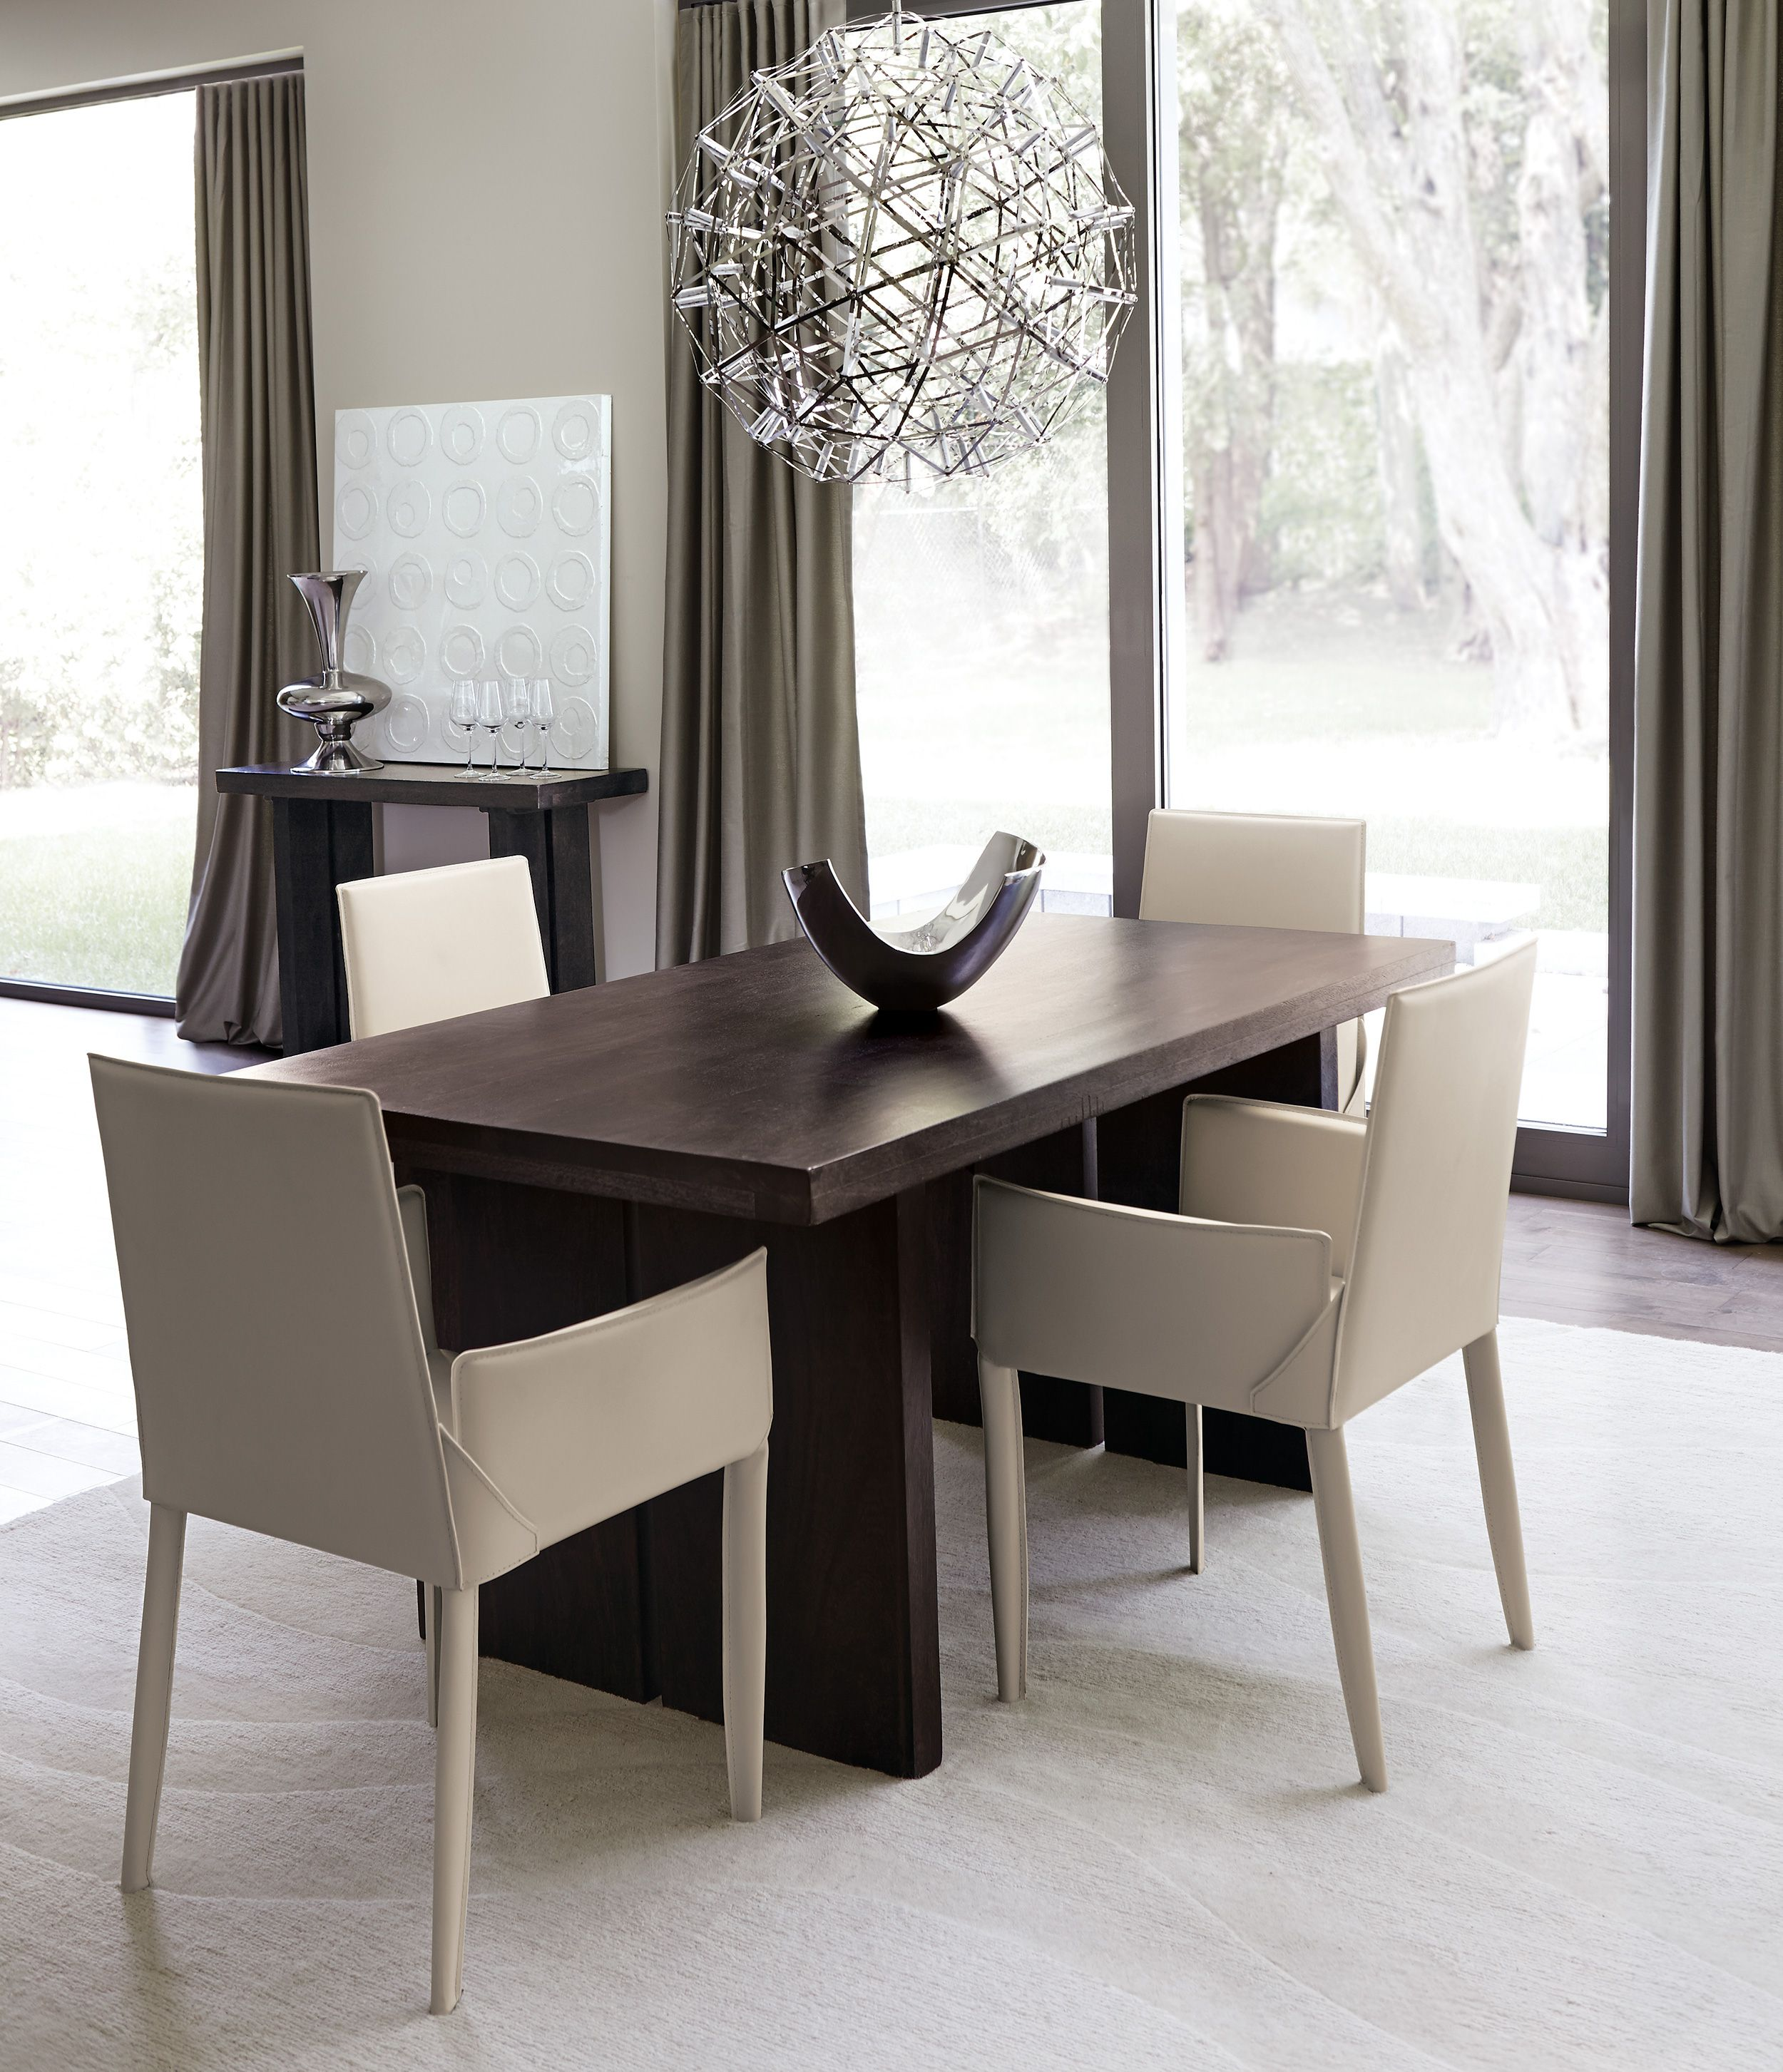 Contempo Dining Room Decor Leather dining, Home decor